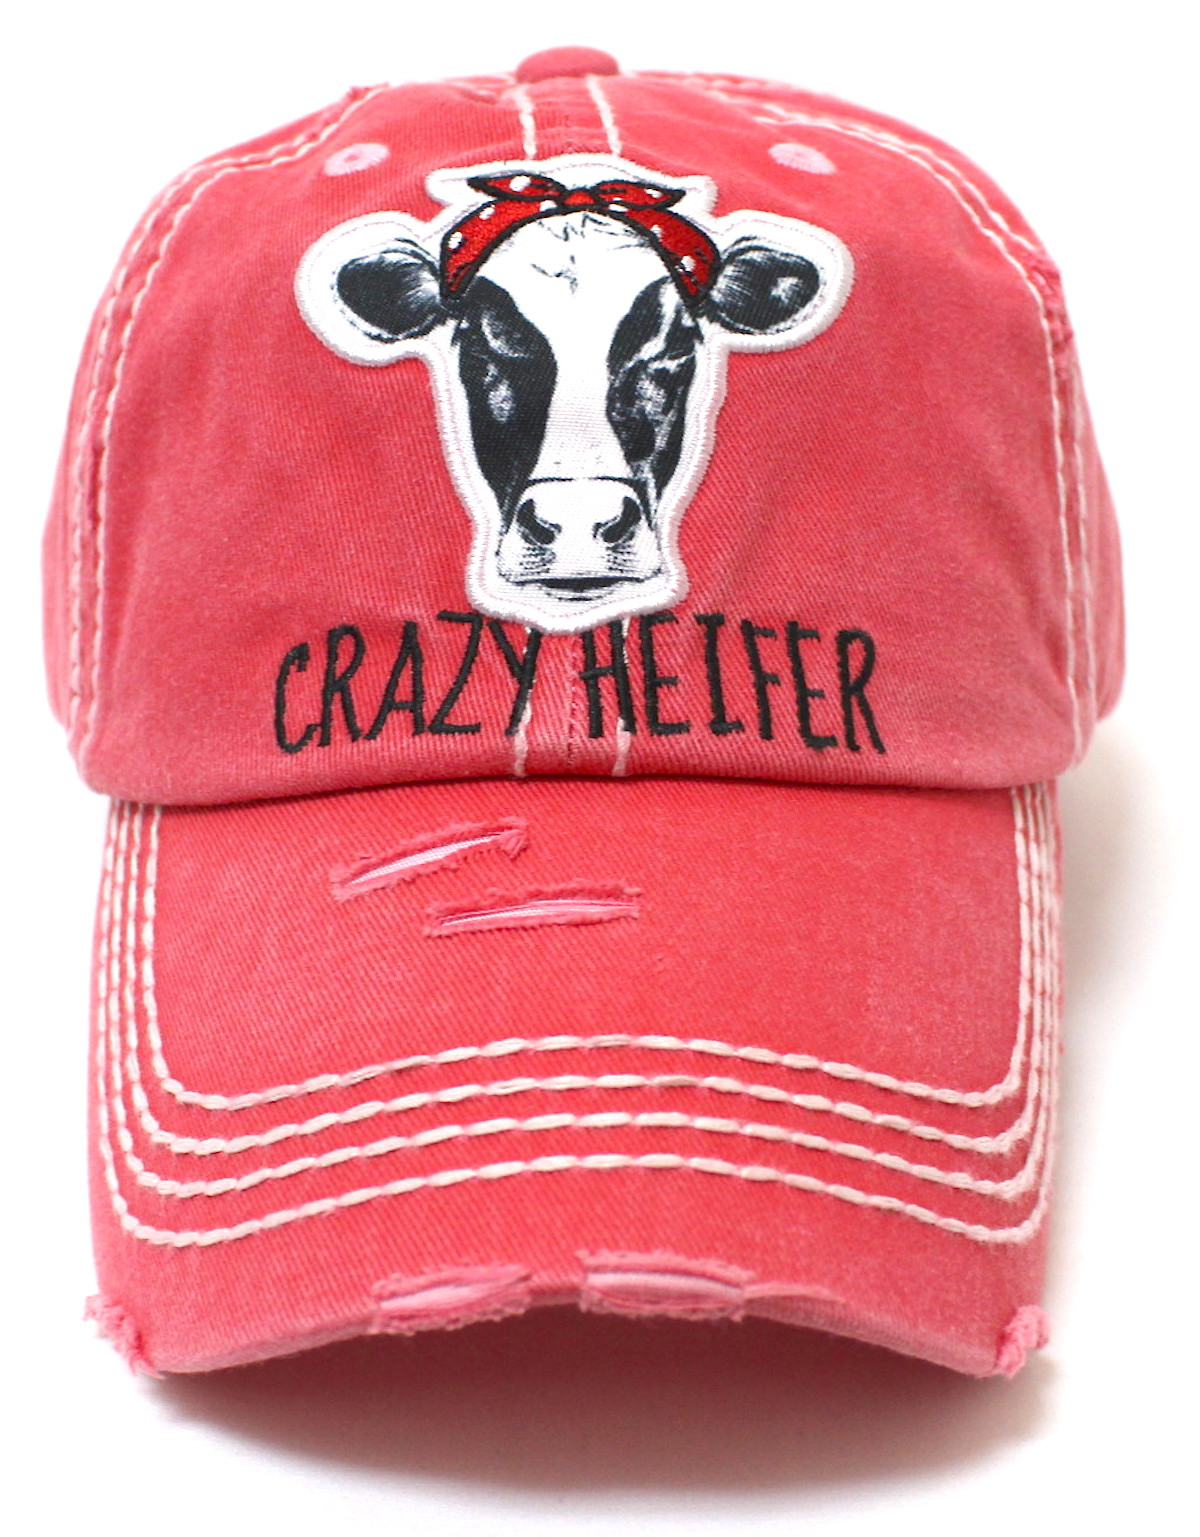 CrazyHeifer_Cor_Front